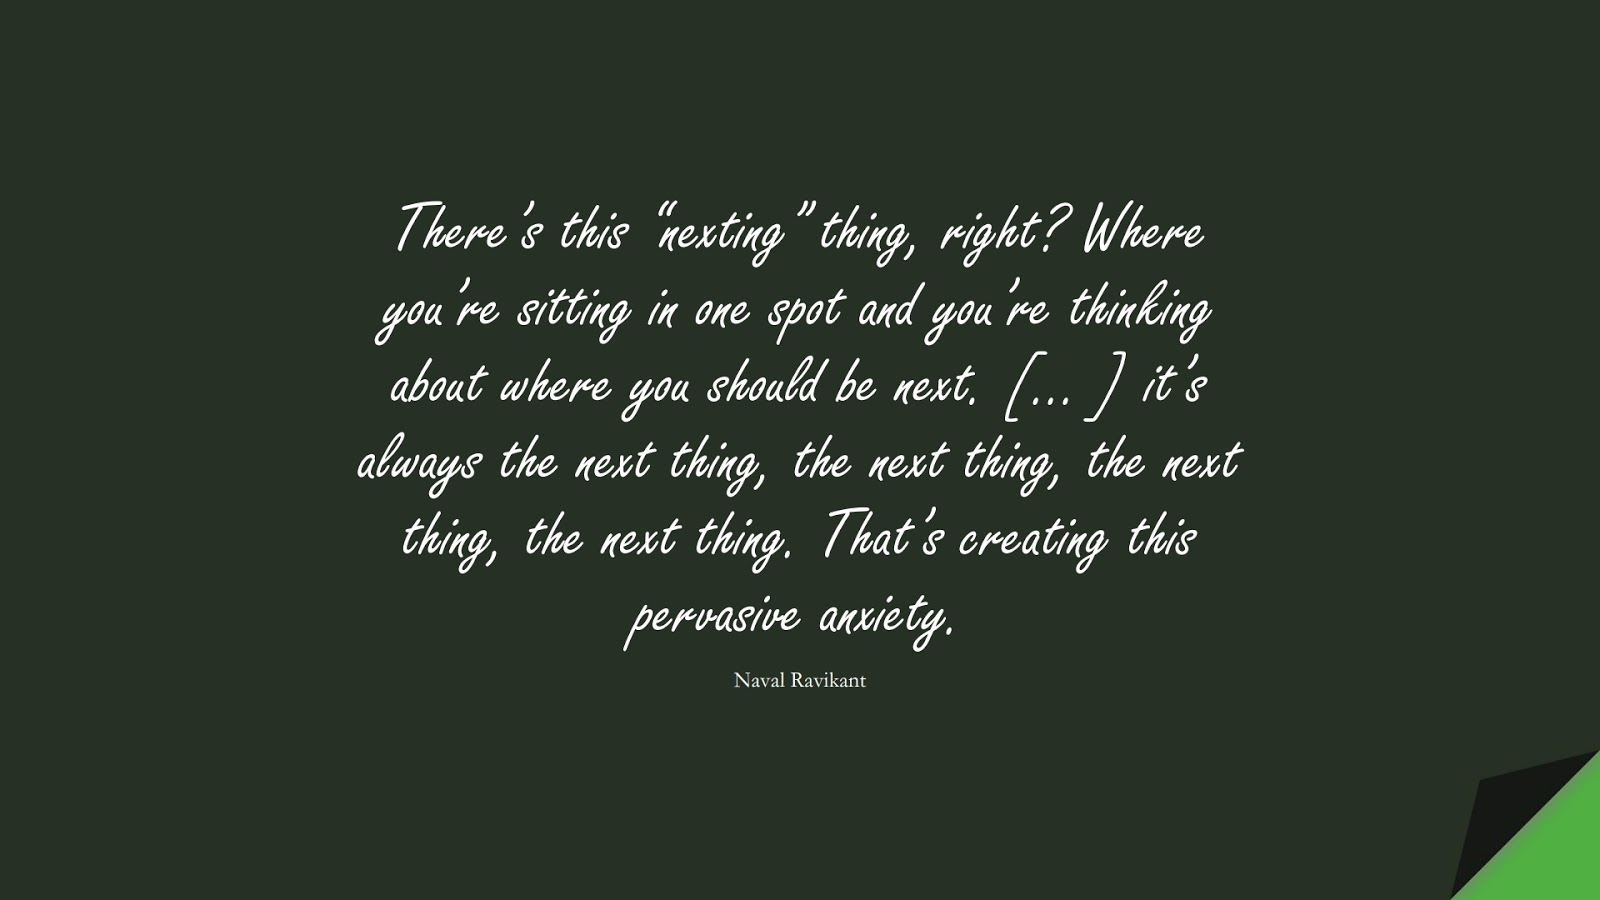 """There's this """"nexting"""" thing, right? Where you're sitting in one spot and you're thinking about where you should be next. [… ] it's always the next thing, the next thing, the next thing, the next thing. That's creating this pervasive anxiety. (Naval Ravikant);  #AnxietyQuotes"""